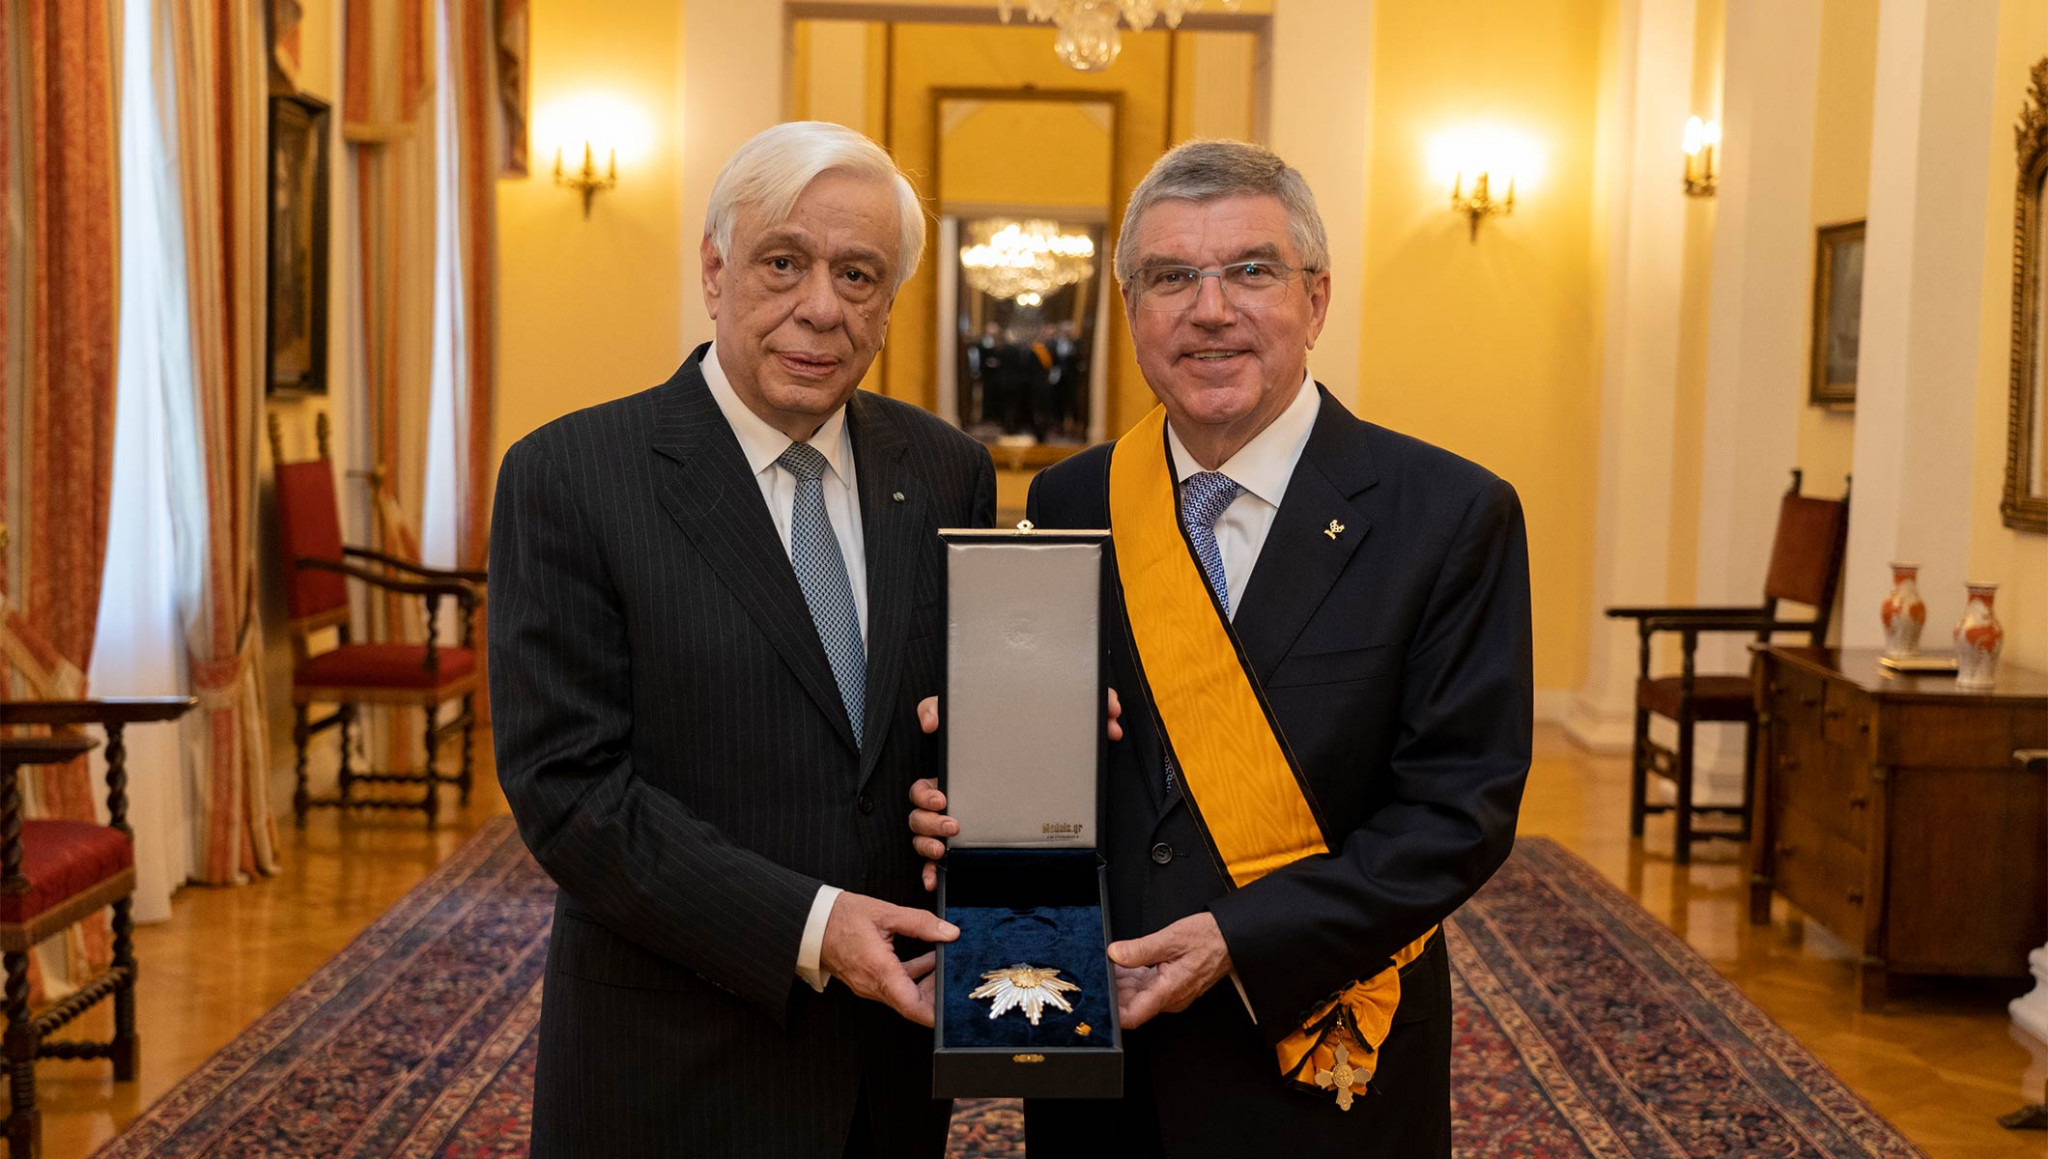 Thomas Bach was awarded the Grand Cross of the Order of the Phoenix by Hellenic Republic President Prokopis Pavlopoulos ©IOC/Greg Martin